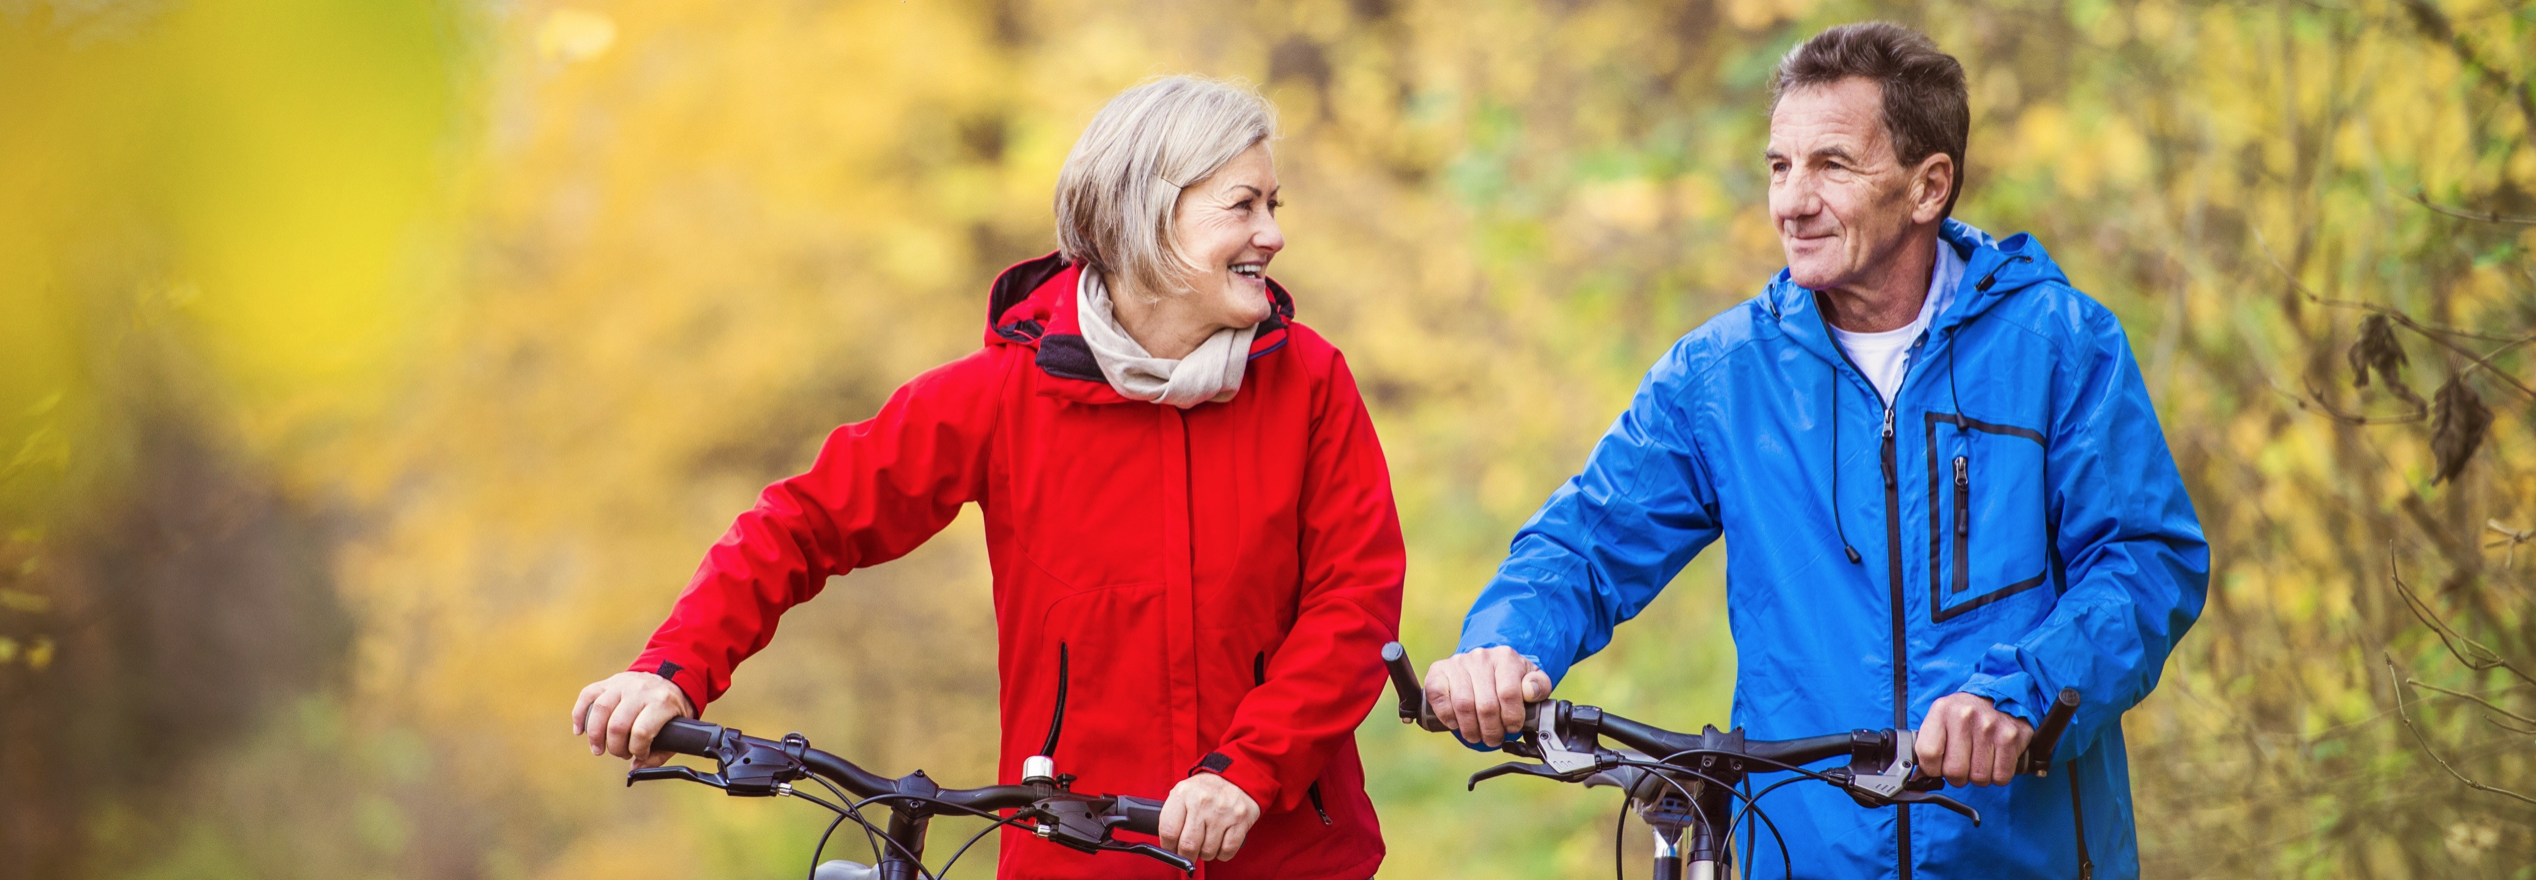 Three benefits from exercising with others